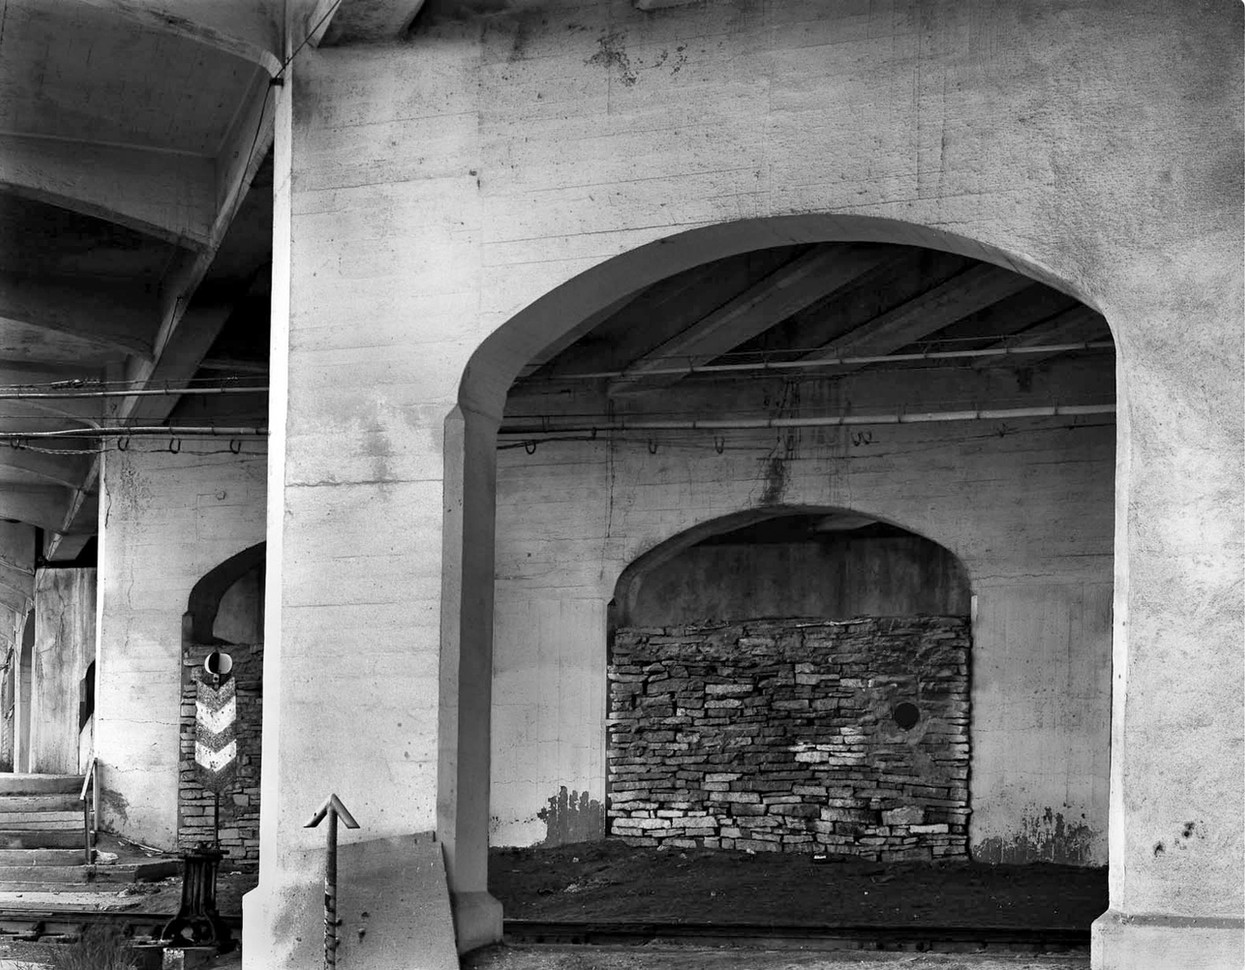 North Avenue Arches